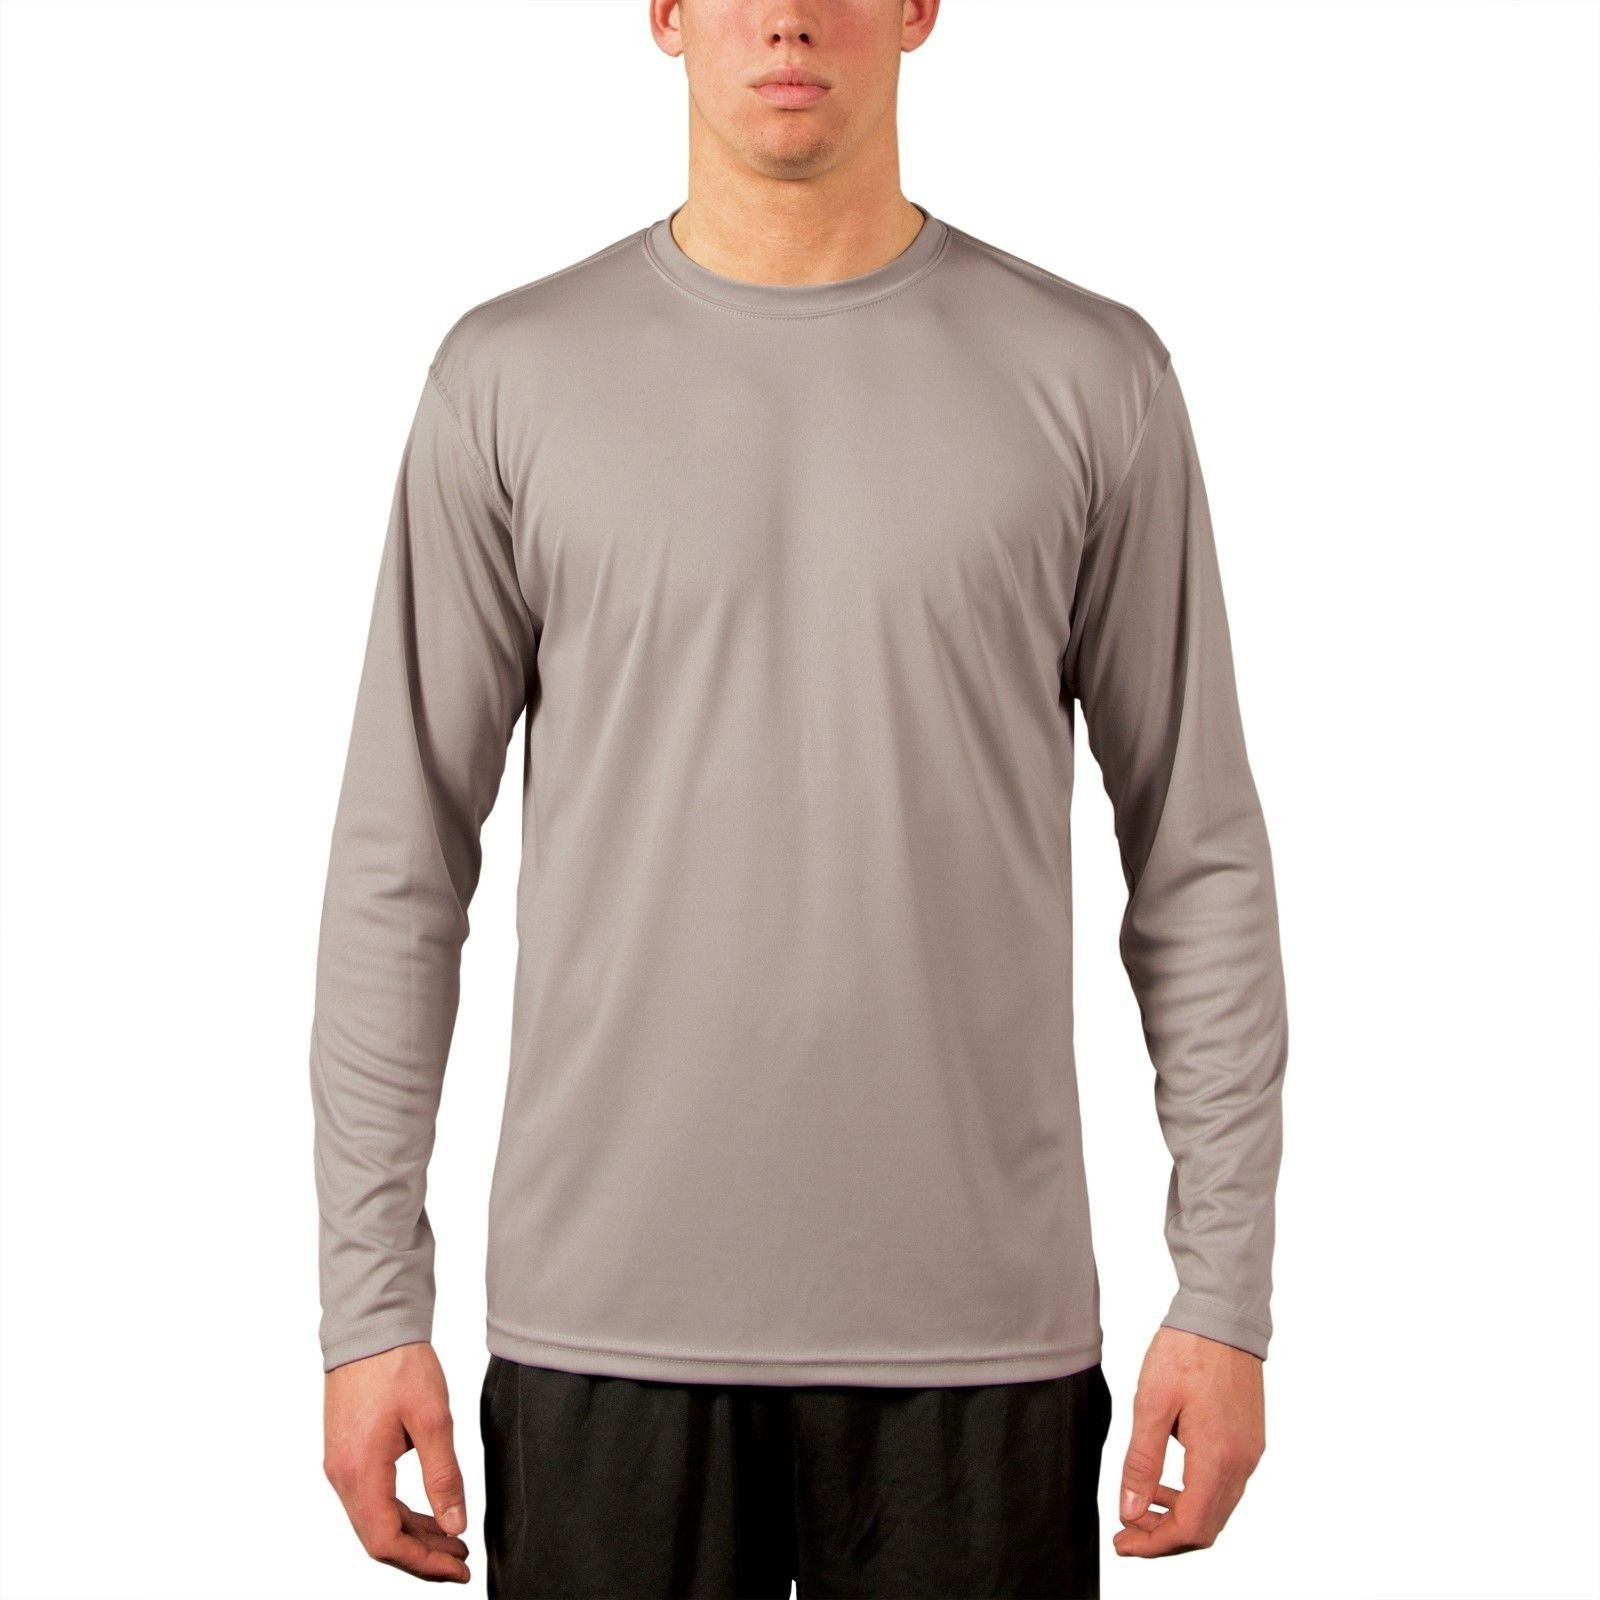 Vapor apparel men 39 s upf 50 uv sun protection long sleeve for Walmart fishing shirts